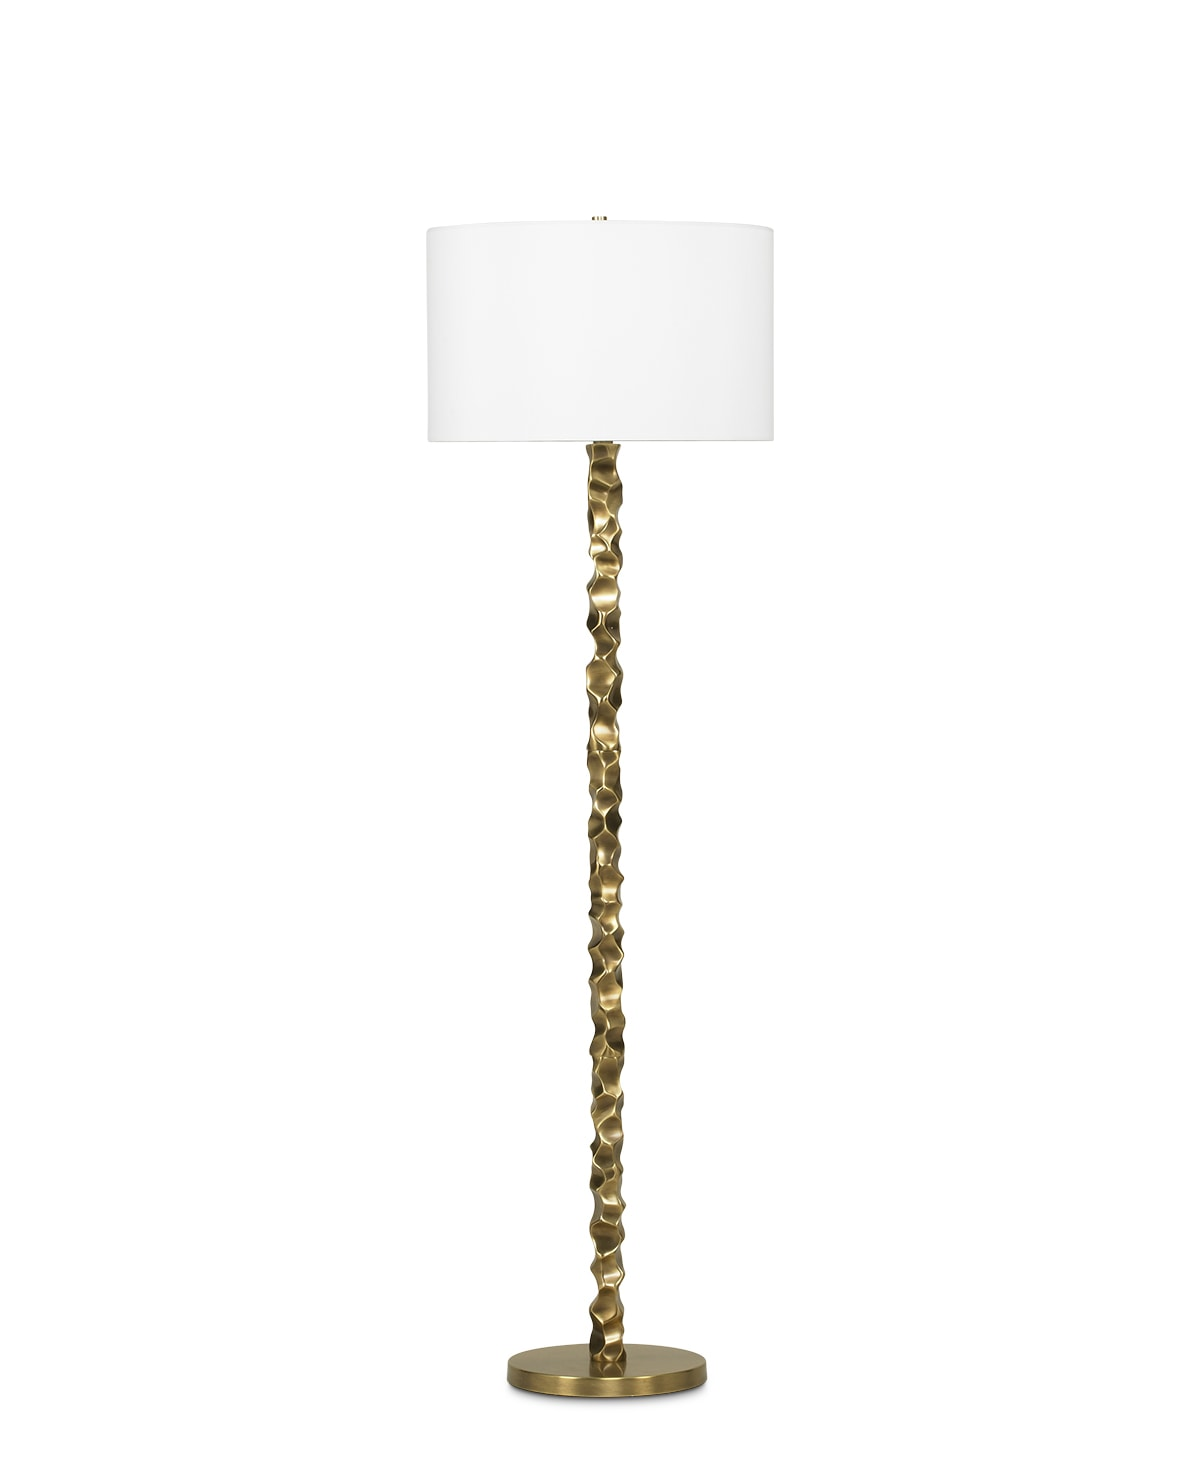 FlowDecor Liam Floor Lamp in brass with antique brass finish and off-white linen drum shade (# 3513)